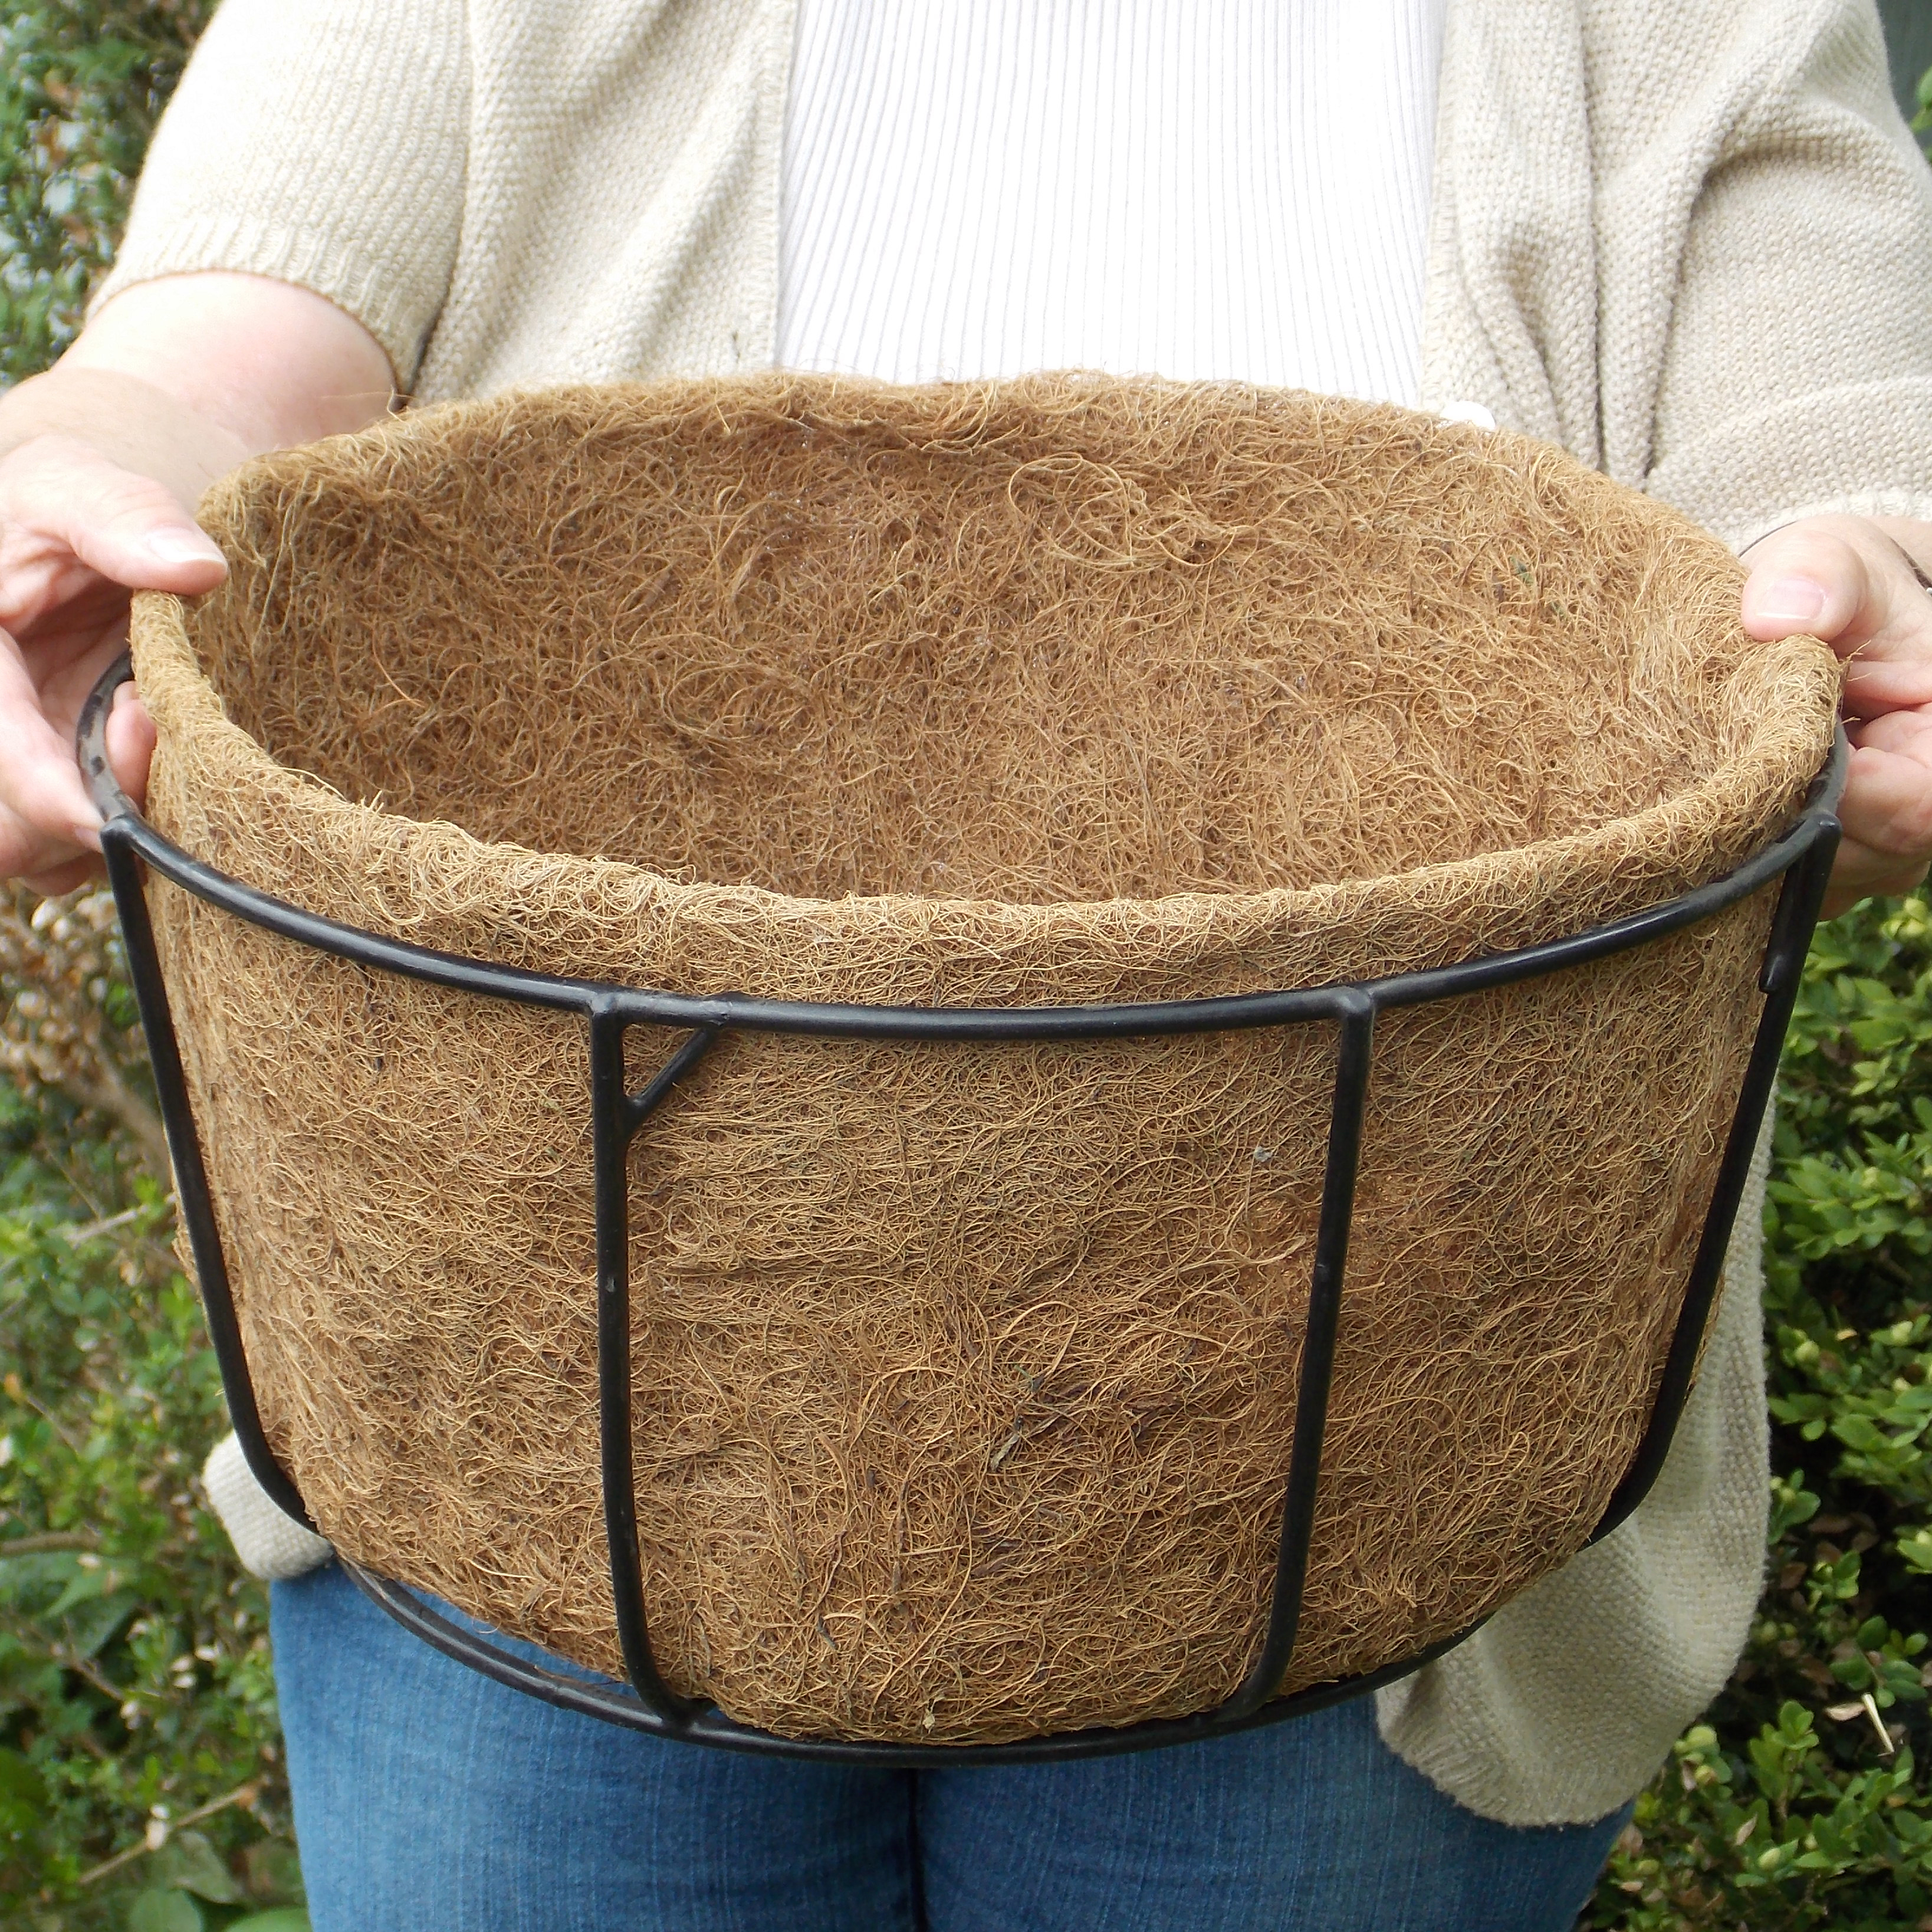 CASE/10 14 SINGLE BASIC BASKET PLANTER LINER (NO HOLES)